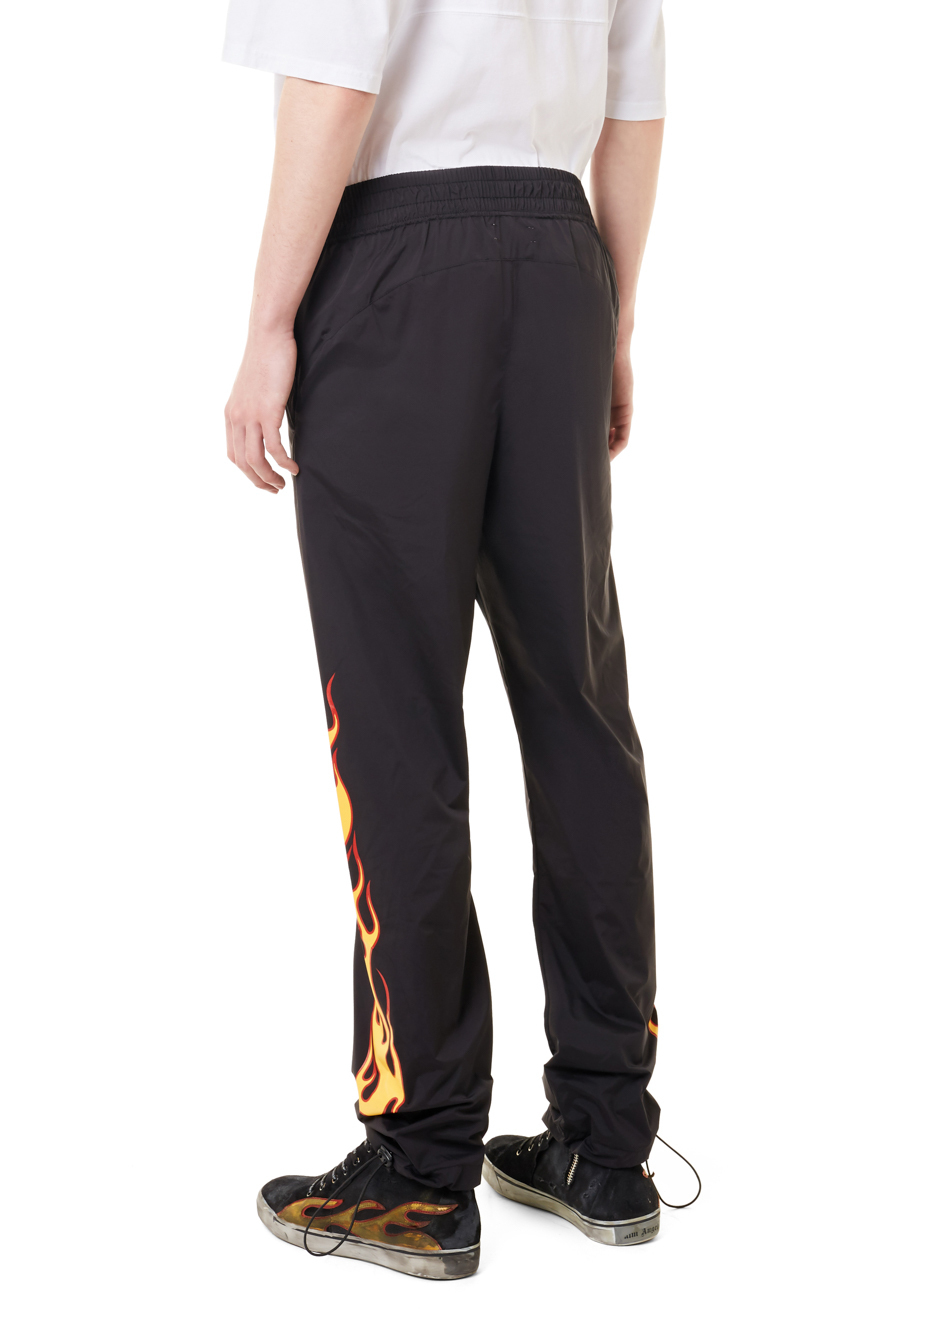 【PALM ANGELS】☆セレブ愛用☆新作☆PALMS AND FLAMES PANT